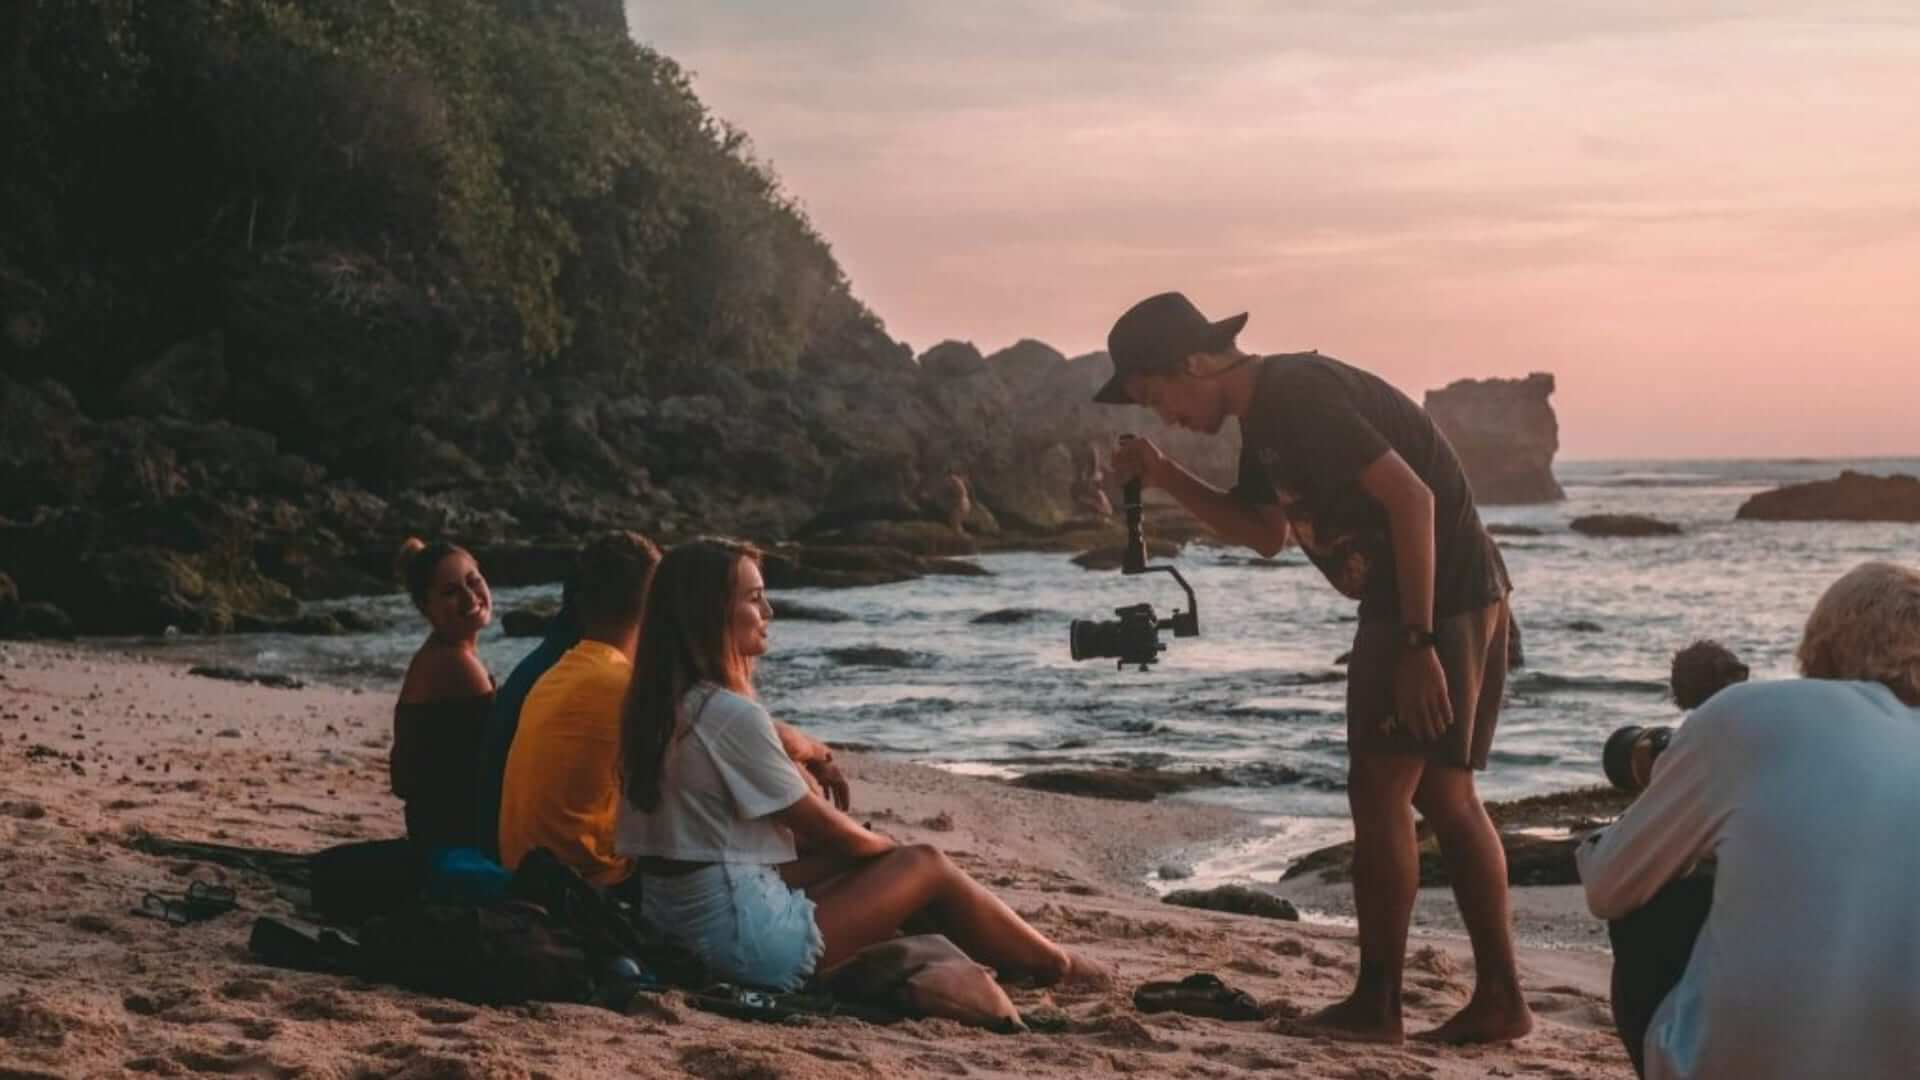 A man is filming students sitting on the beach during sunset in Bali.